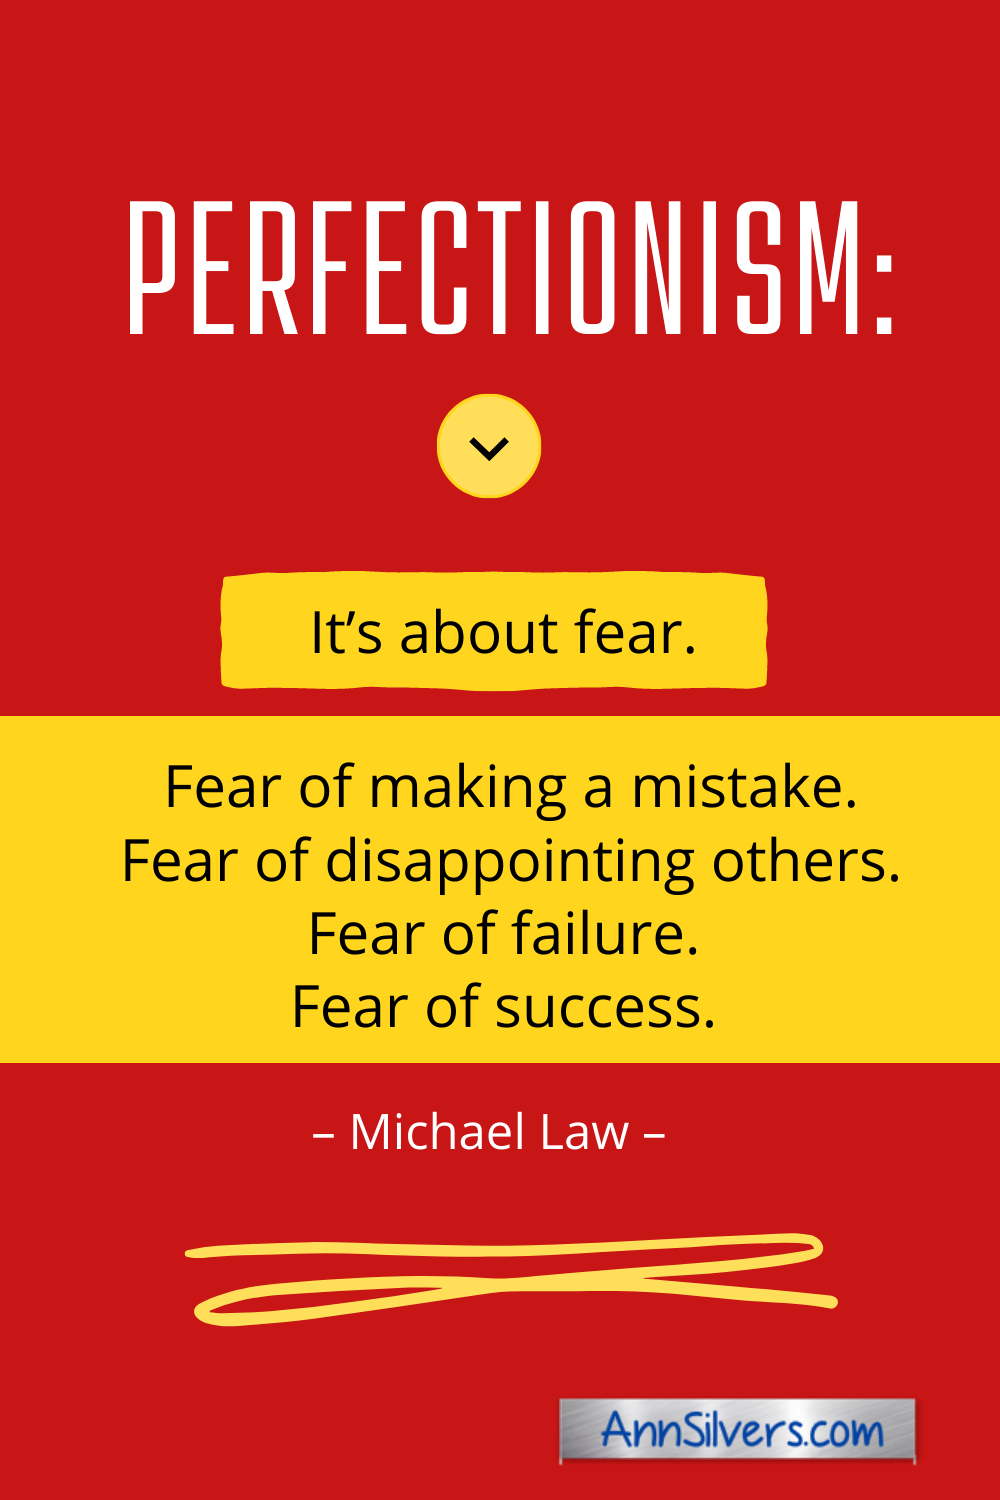 What is perfectionism? Perfectionism is about fear. Quote